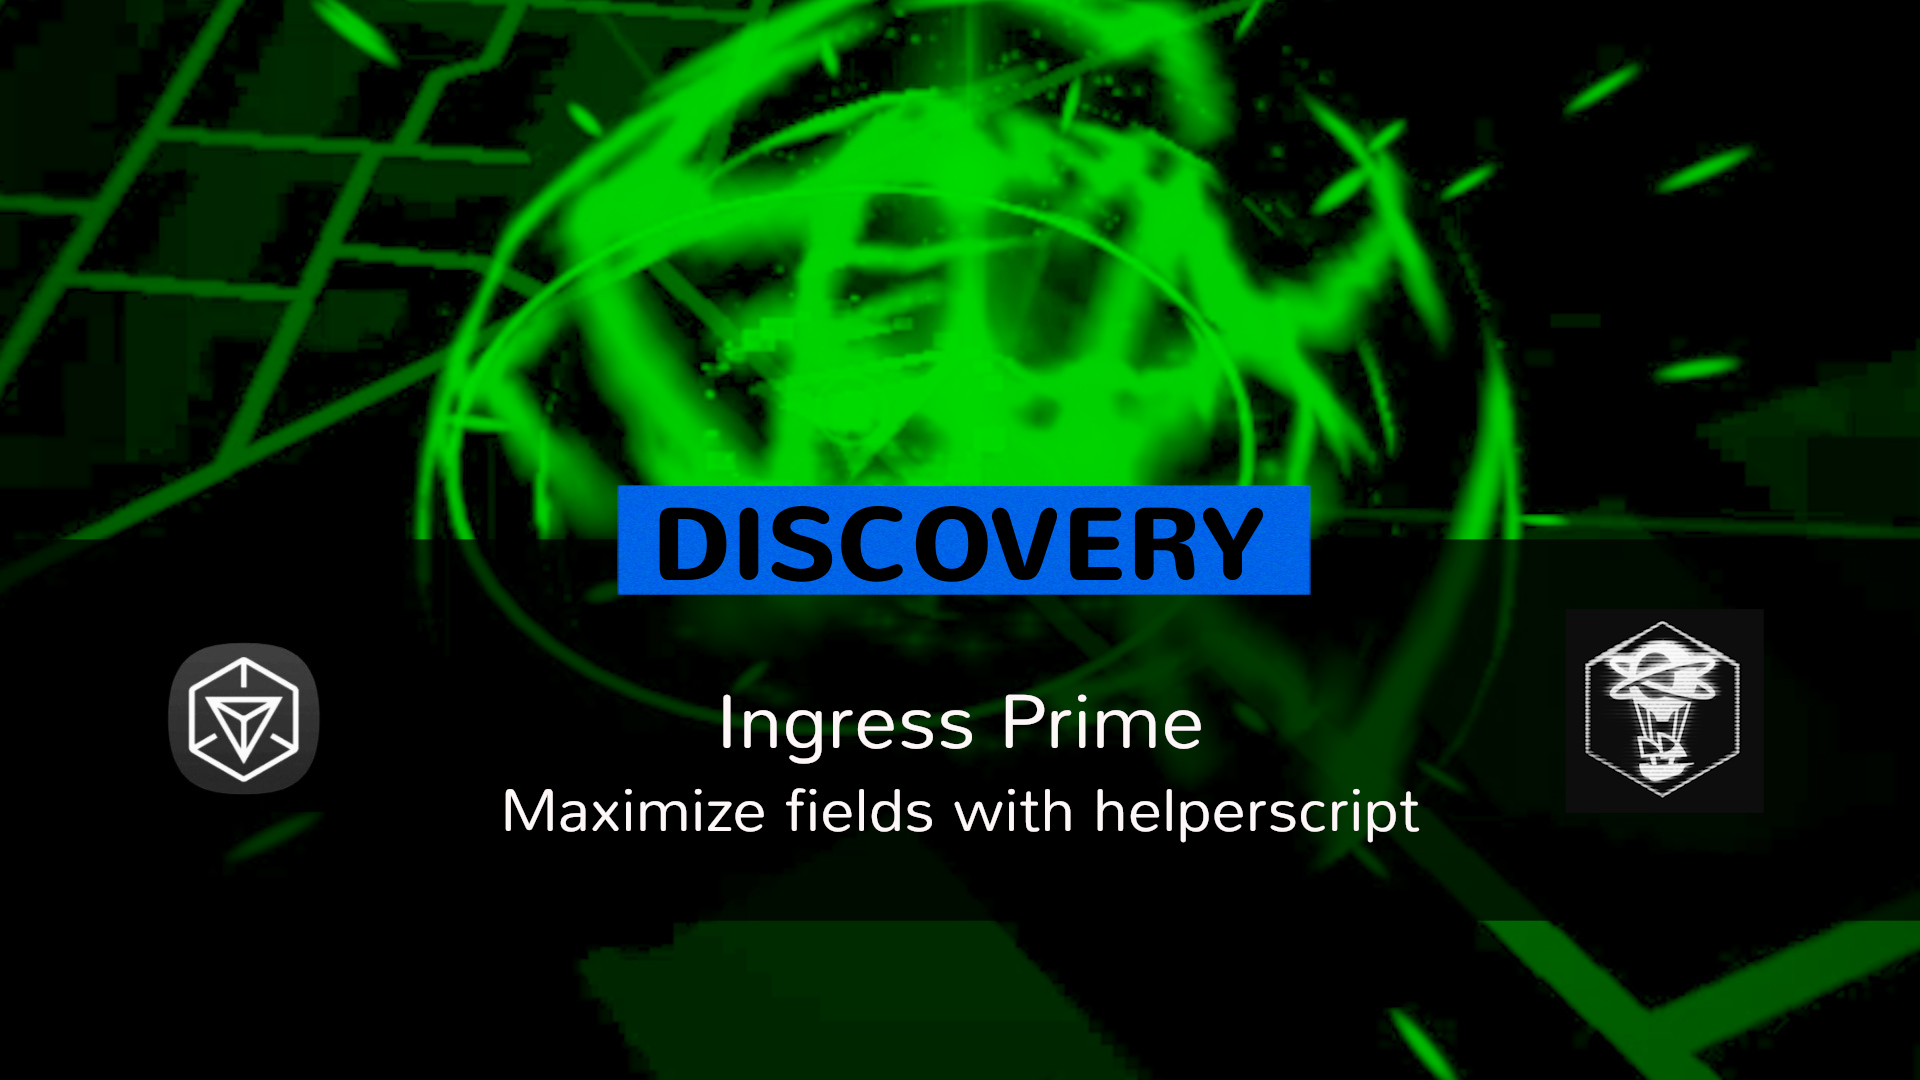 Maximize fields in ingress with automated script